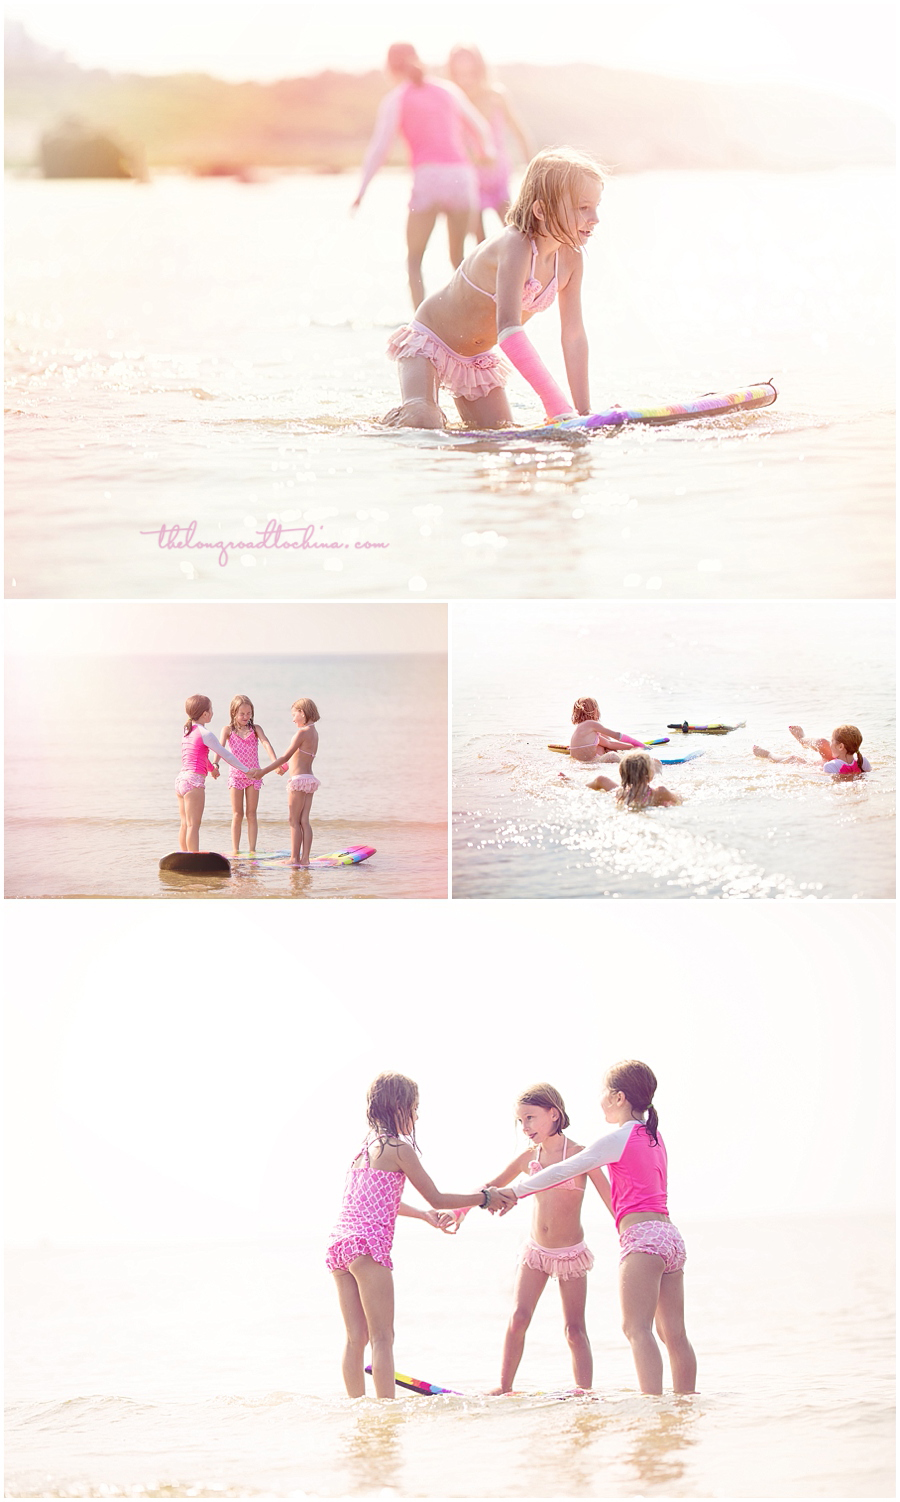 Surfer Girls Sarah and Friends Collage 3